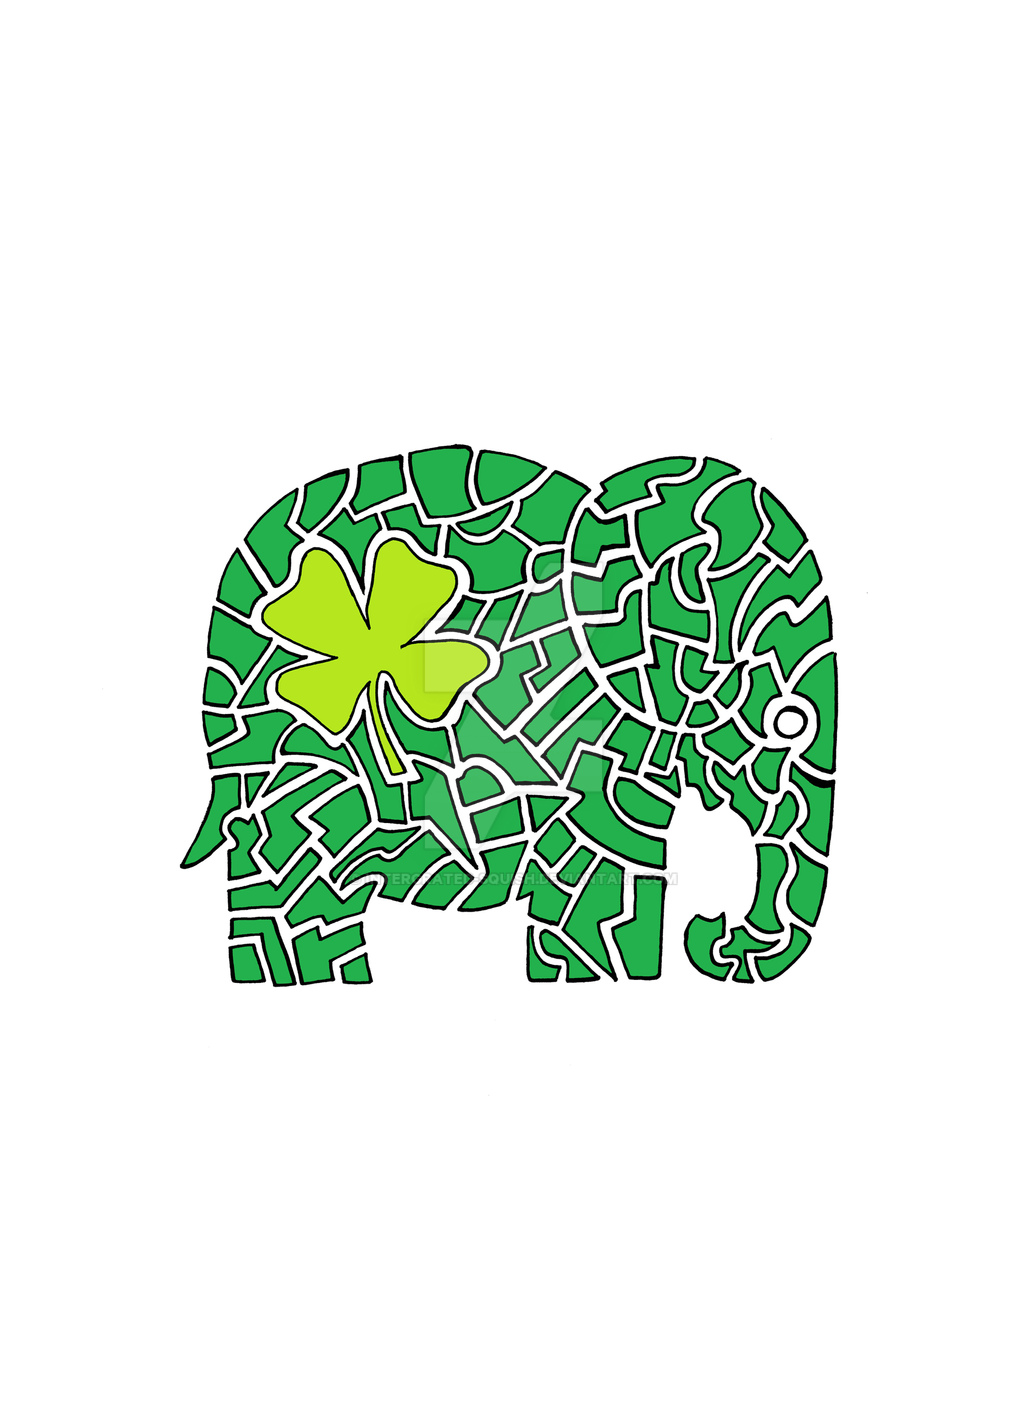 denis the lucky 4 leaf clover elephant by intergrated squish on